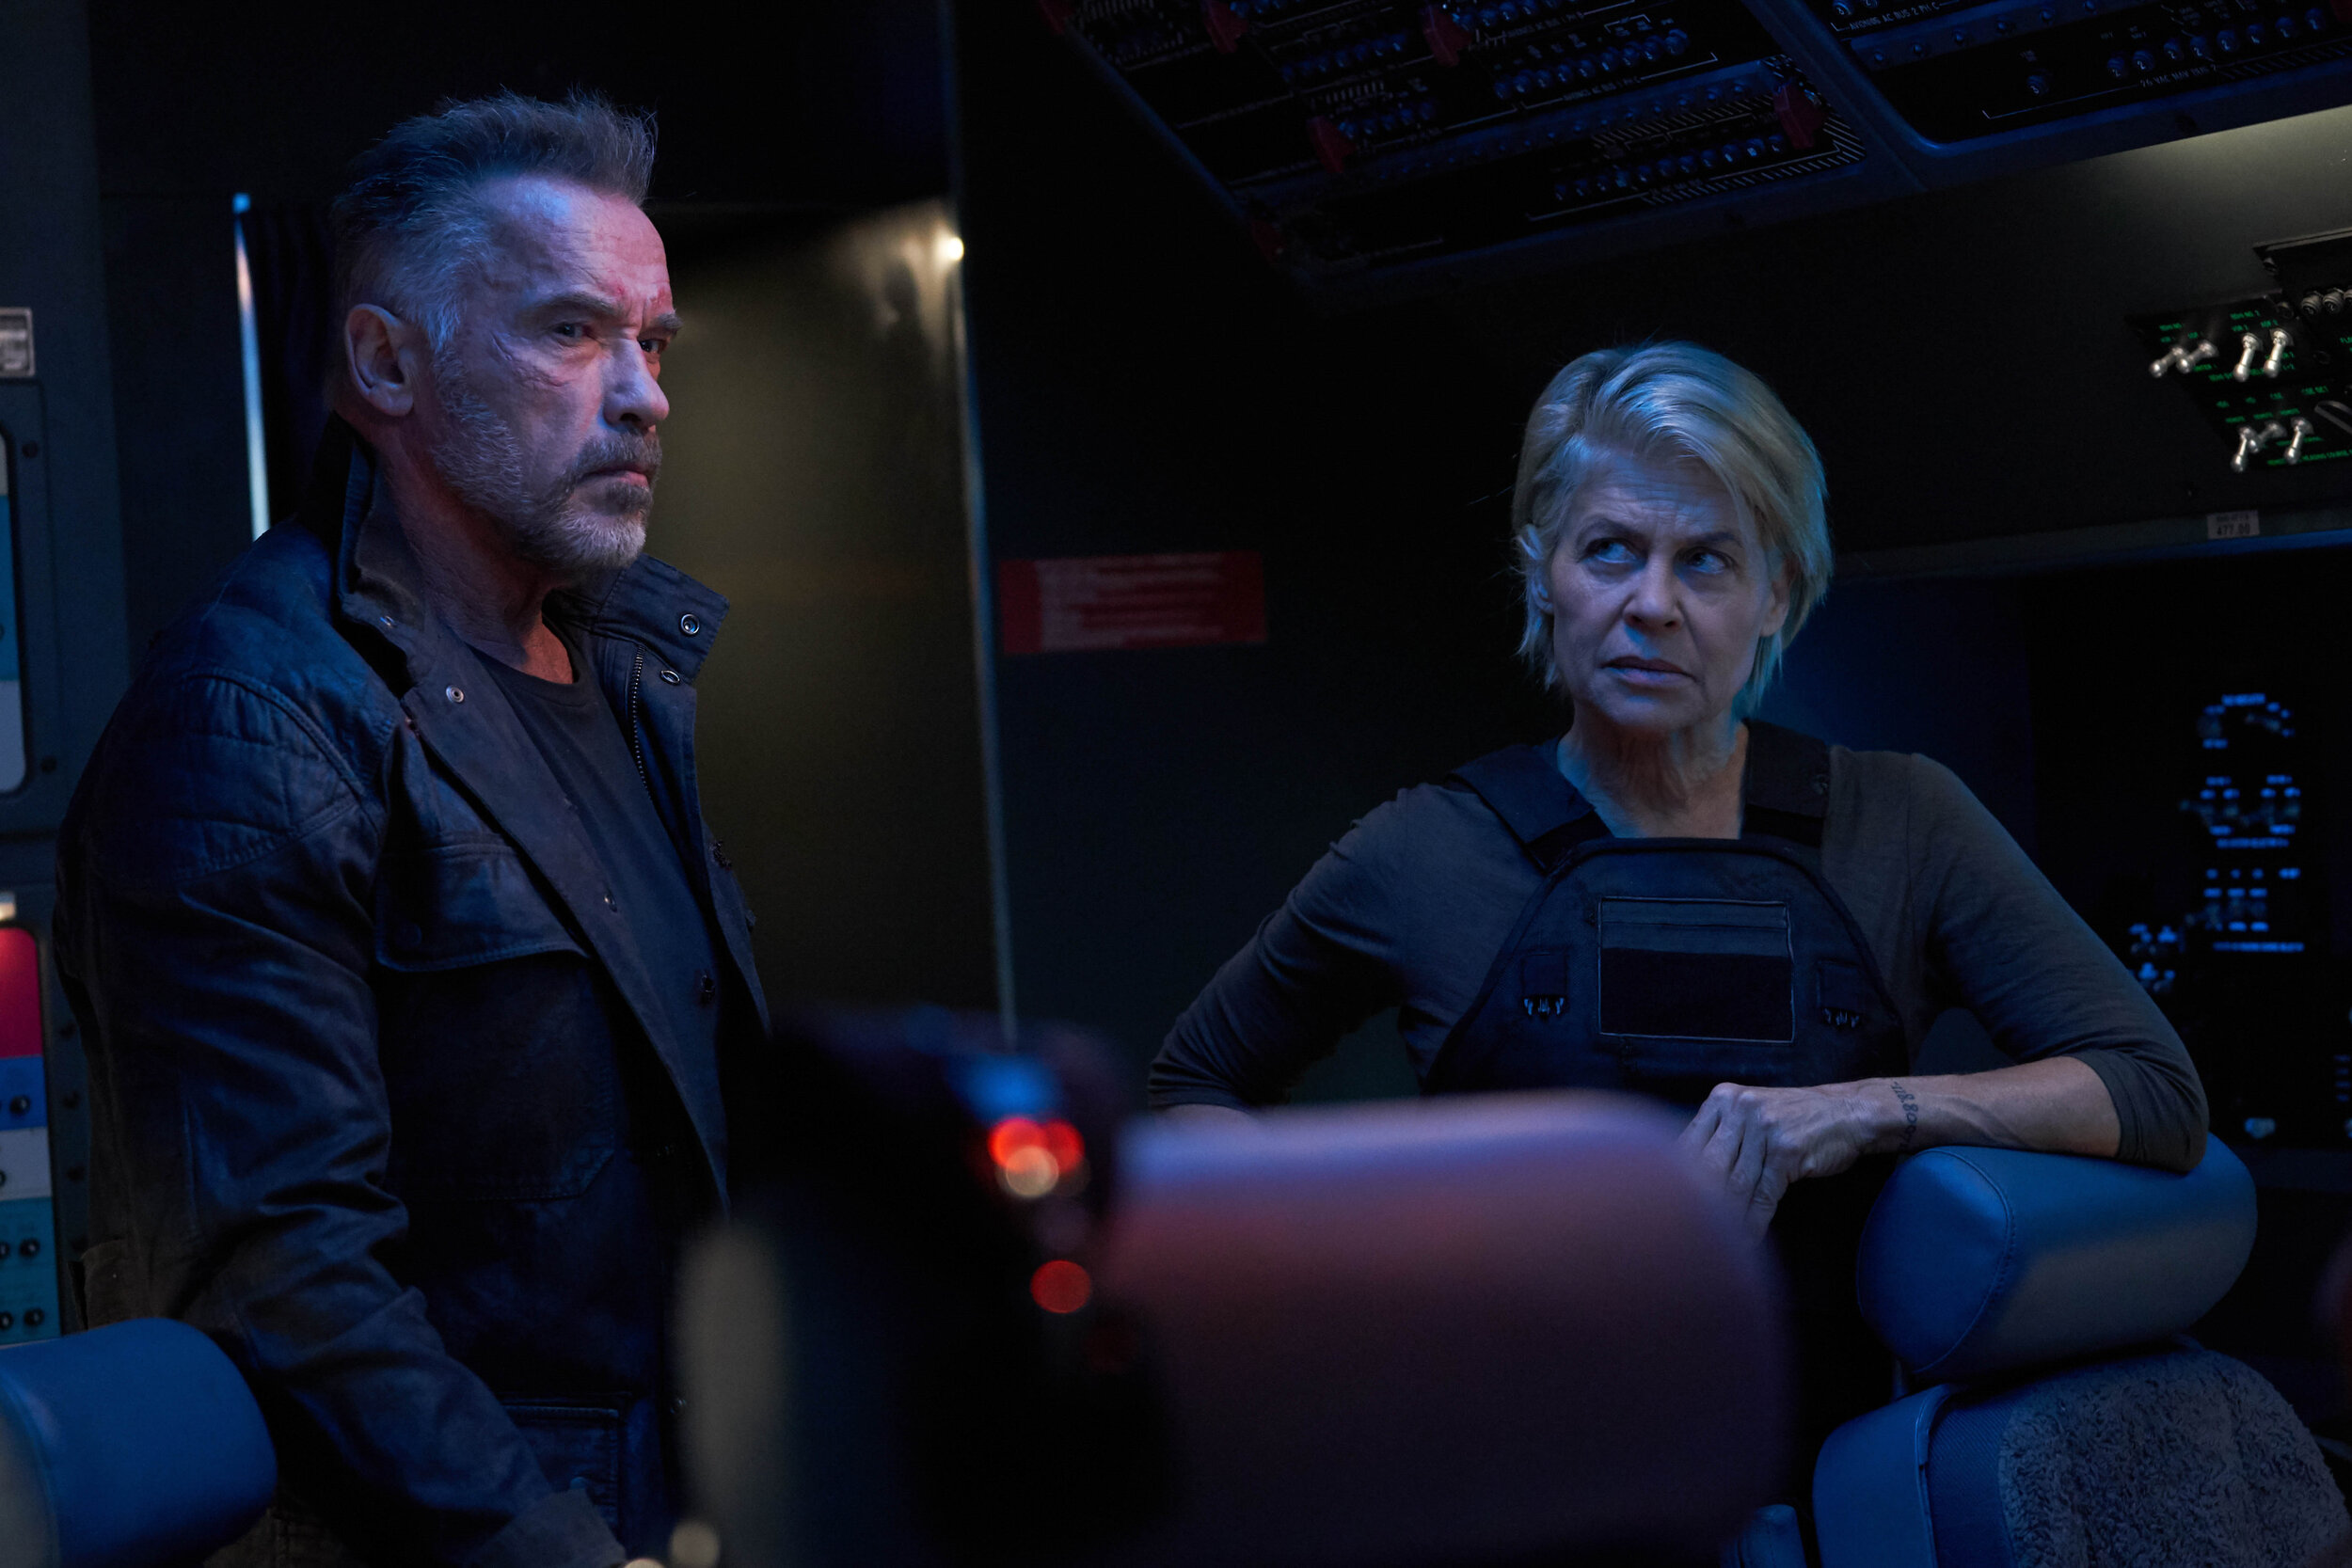 Terminator: Dark Fate. Arnold Schwarzenegger and Linda Hamilton are back!